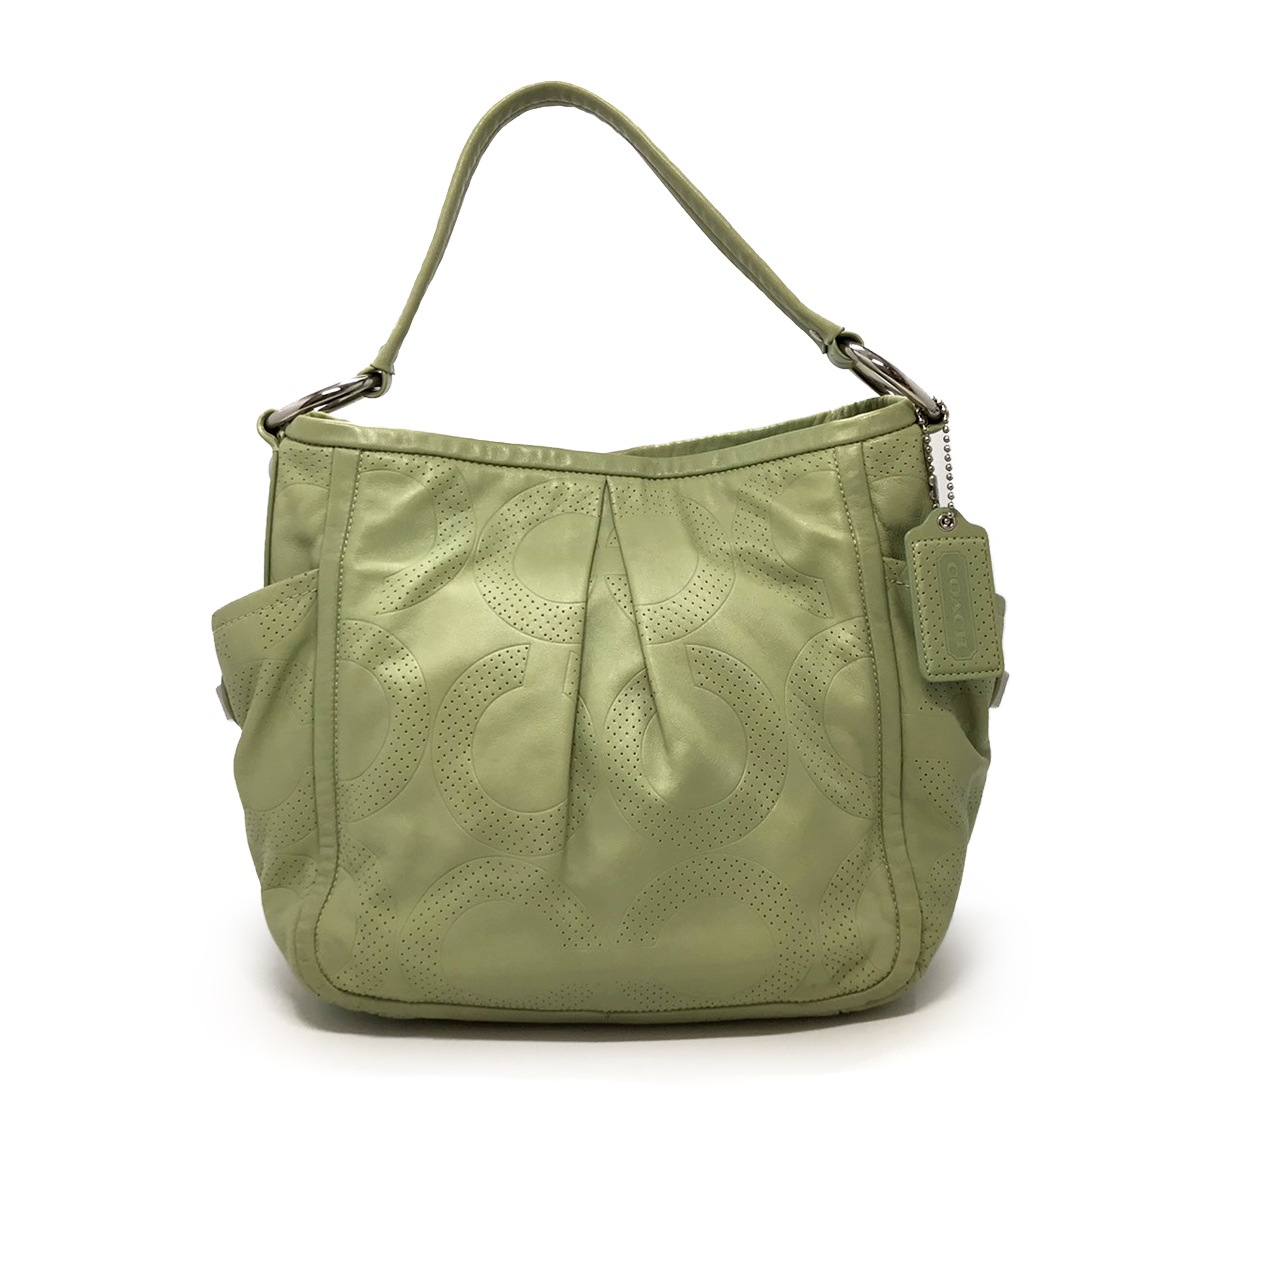 Used Coach Hobo Bag in Green Leather SHW